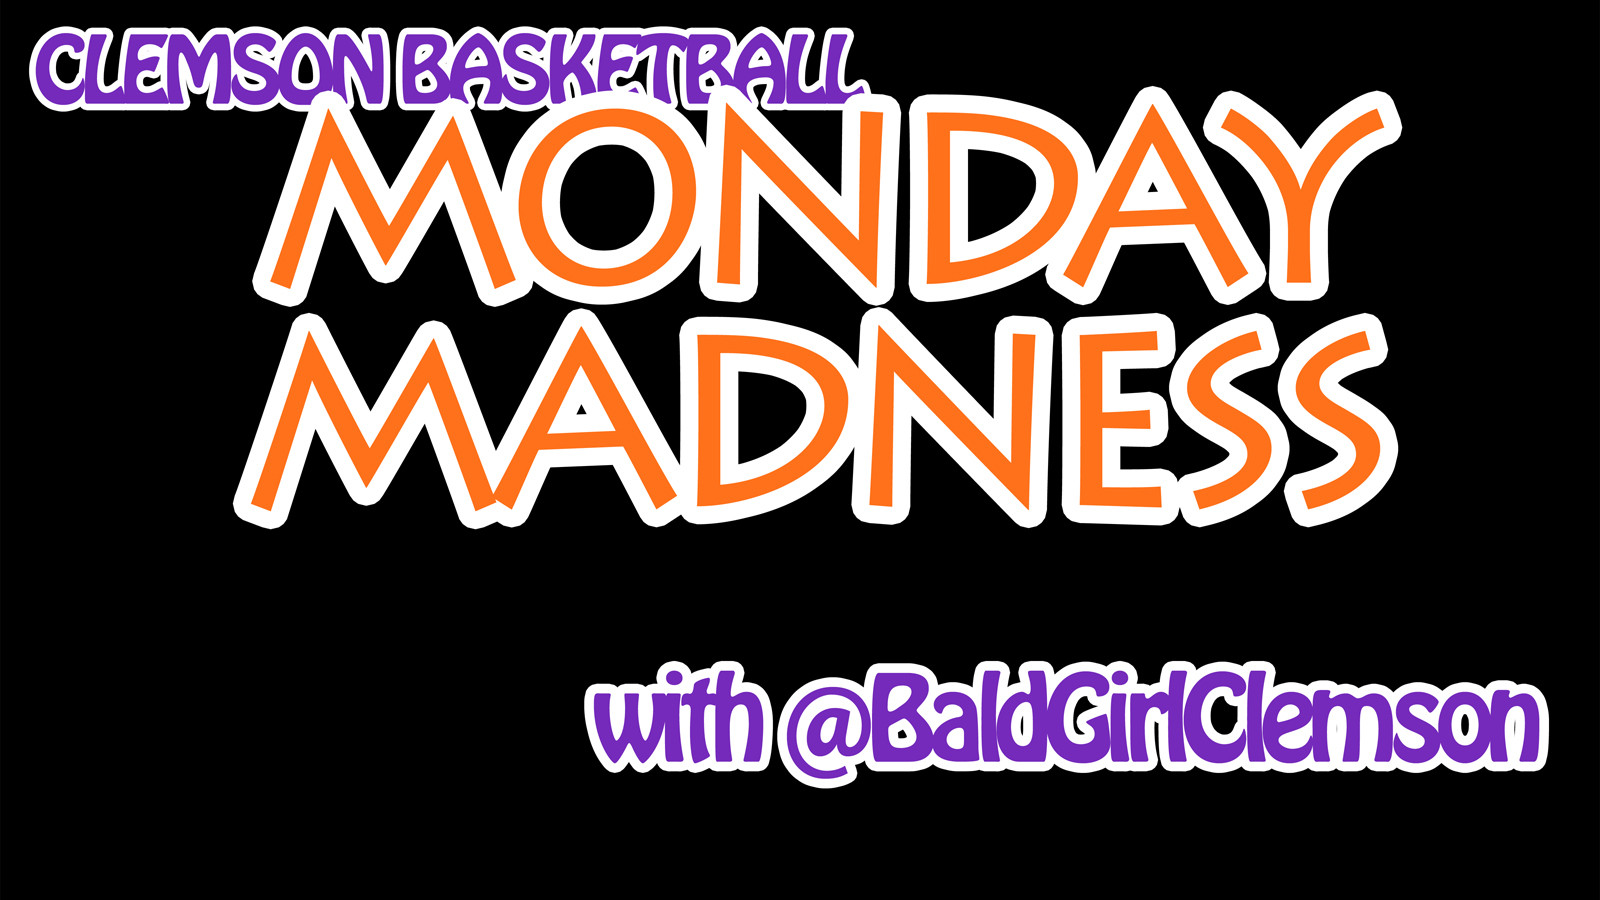 Monday Madness on ClemsonTigers.com: Jaron Blossomgame